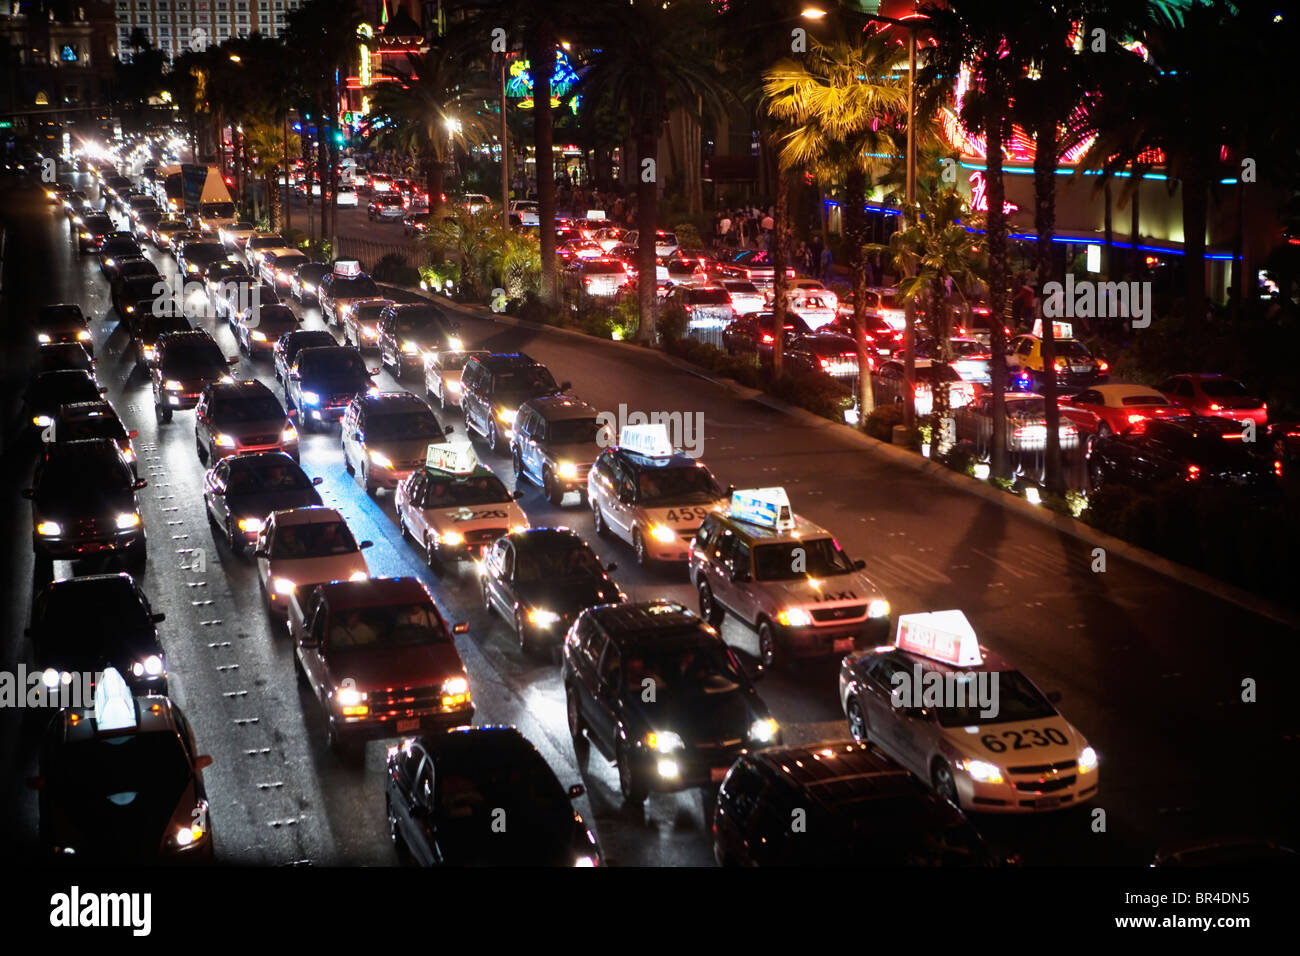 Downtown traffic at night along The Strip, Las Vegas Boulevard, Las Vegas, Nevada - Stock Image